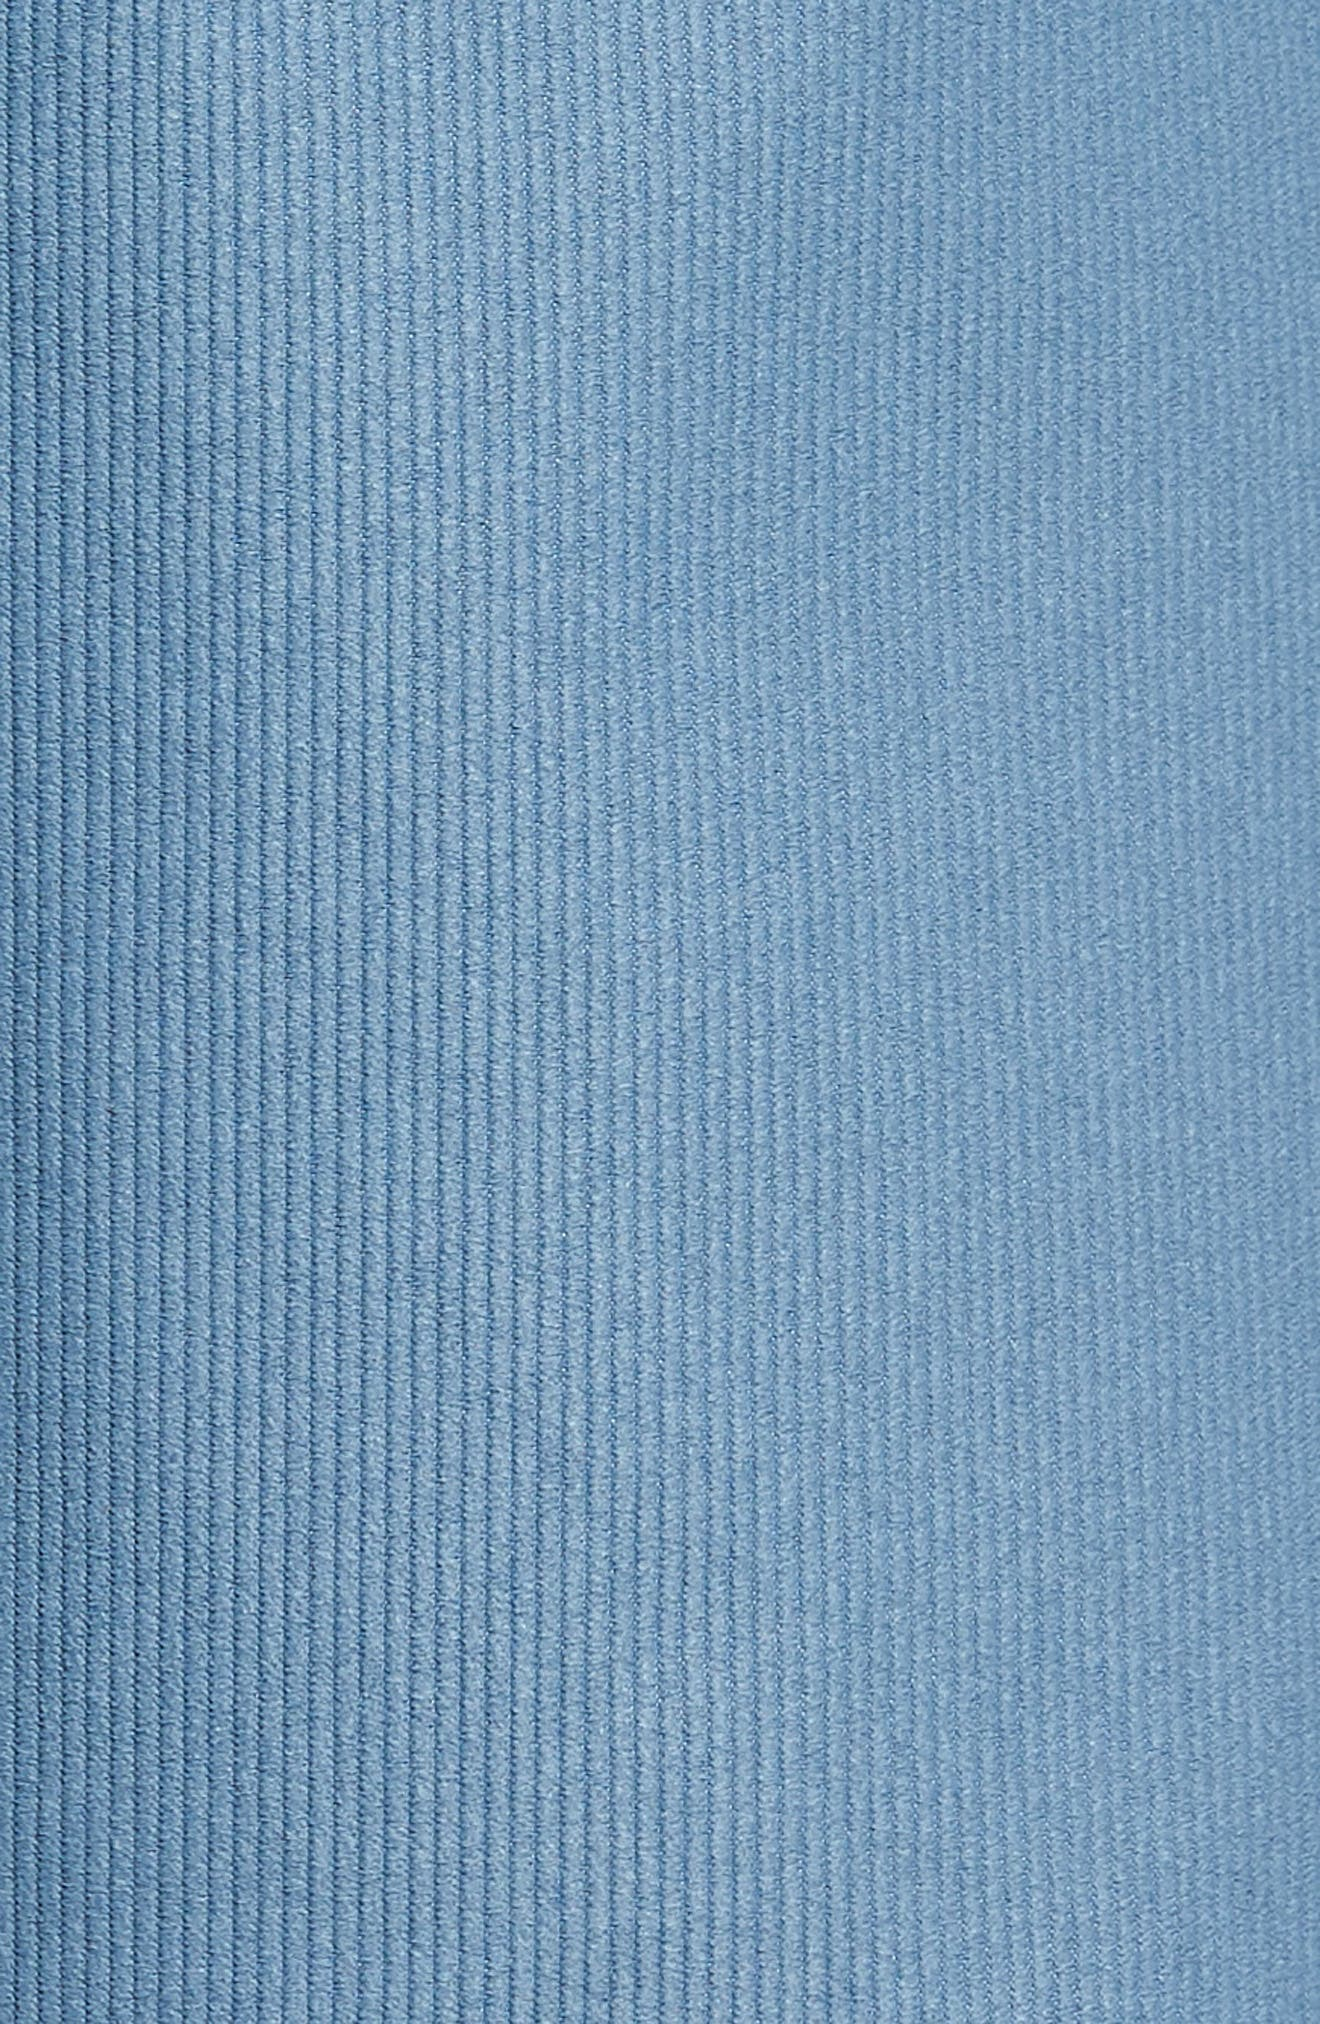 Outsider X Surf Corduroy Shorts,                             Alternate thumbnail 5, color,                             POWDER BLUE